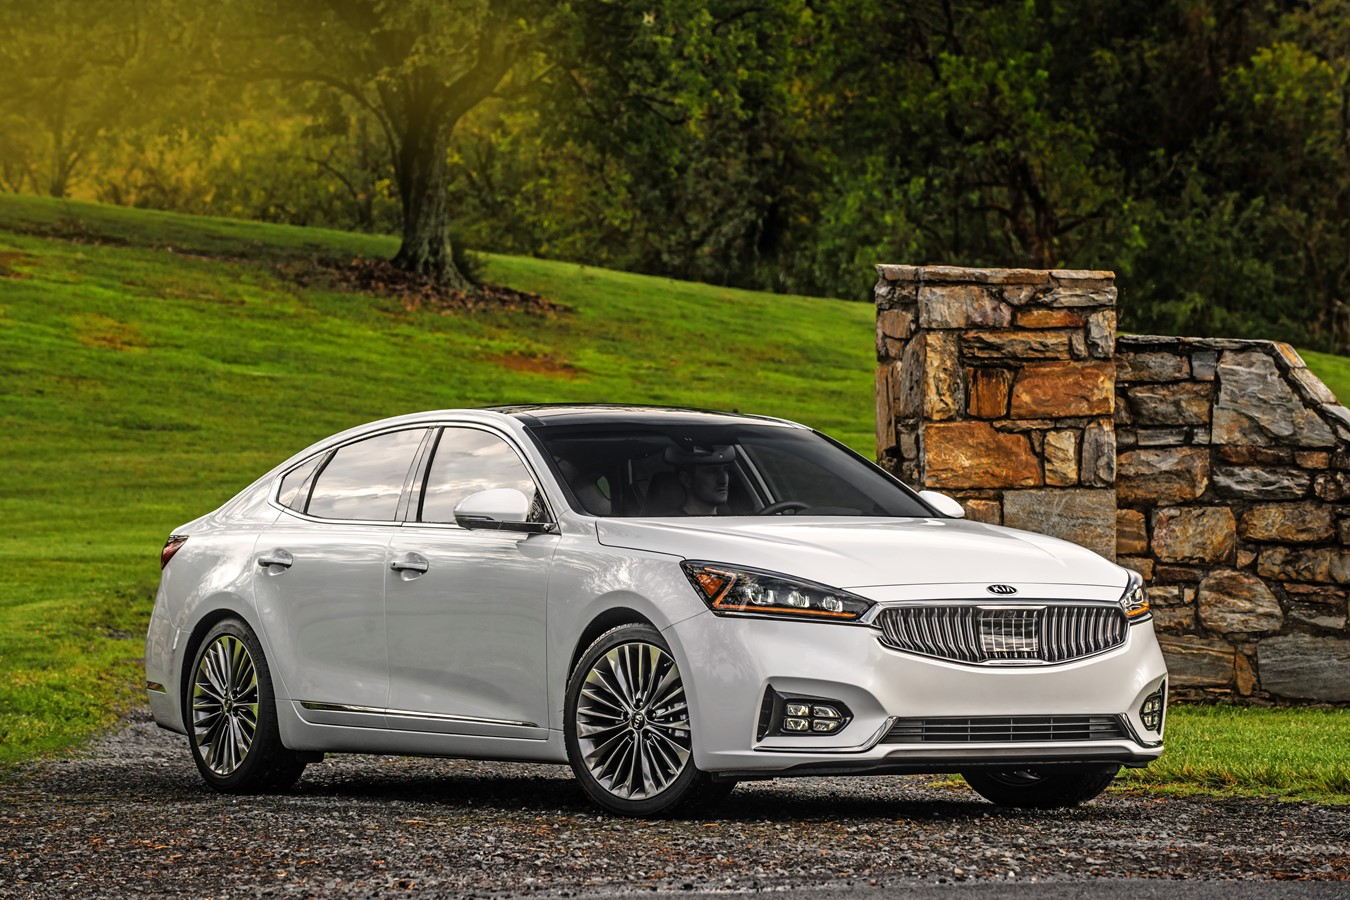 KIA CADENZA NAMED BEST LARGE CAR FOR FAMILIES BY U S  NEWS